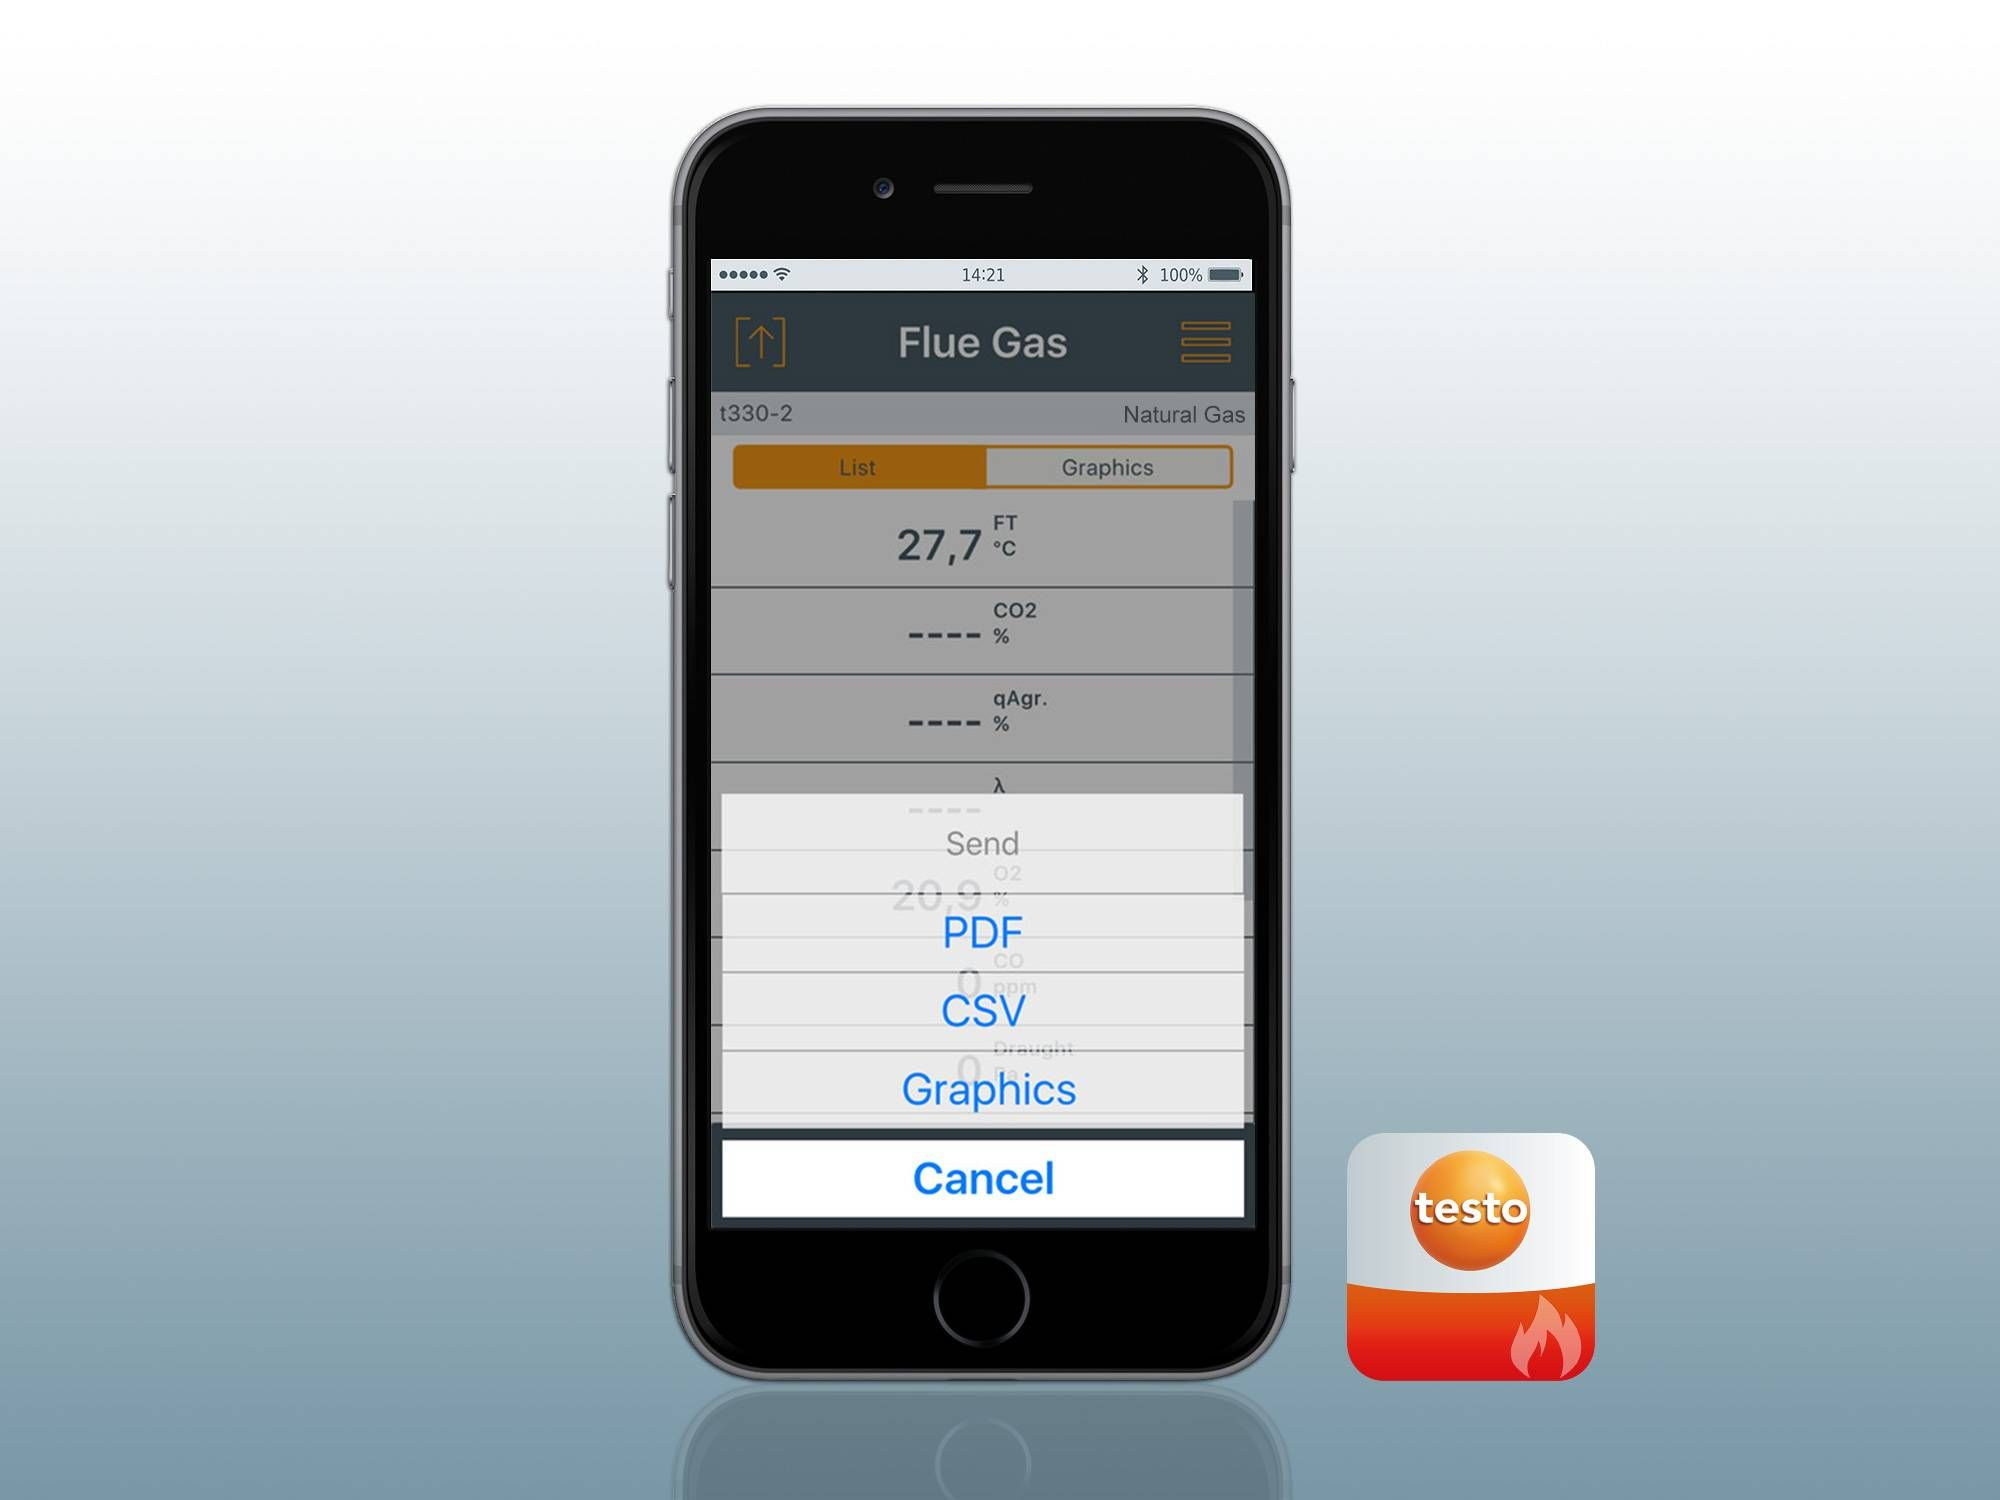 testo flue gas App and testo 330i App